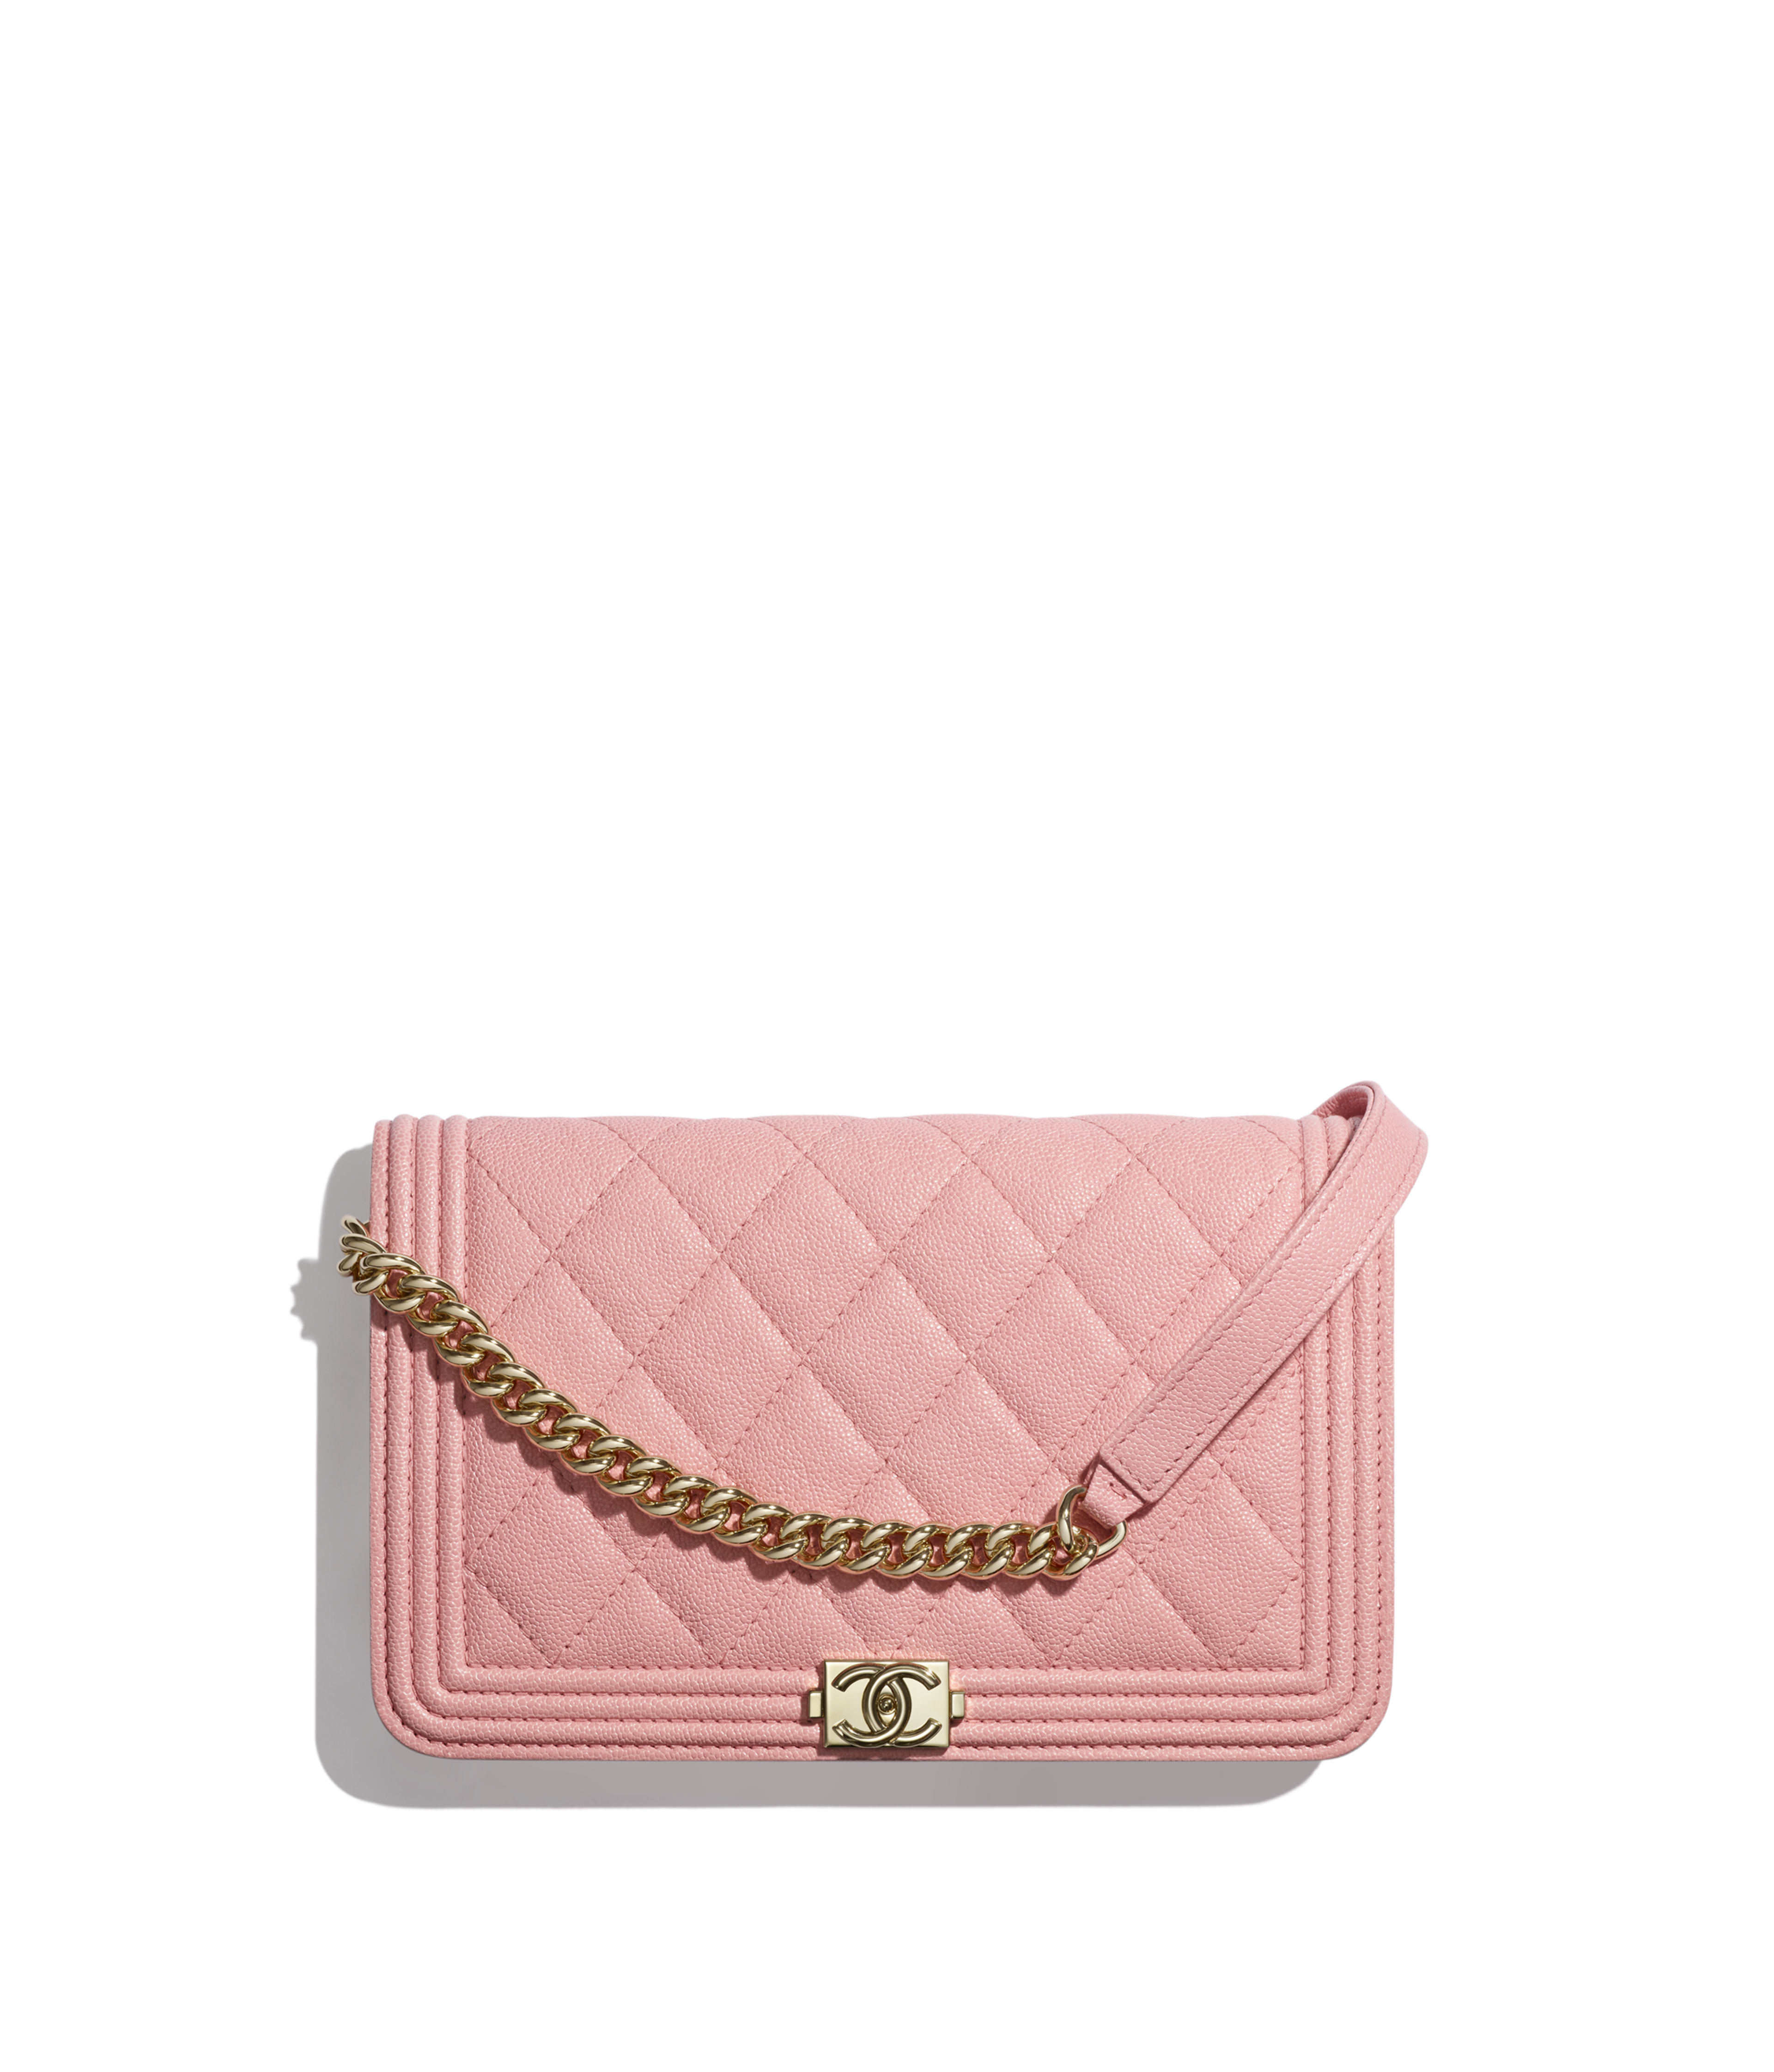 45542c79dfd5 BOY CHANEL Wallet on Chain Grained Calfskin & Gold-Tone Metal, Pink Ref.  A81969B00317N0897